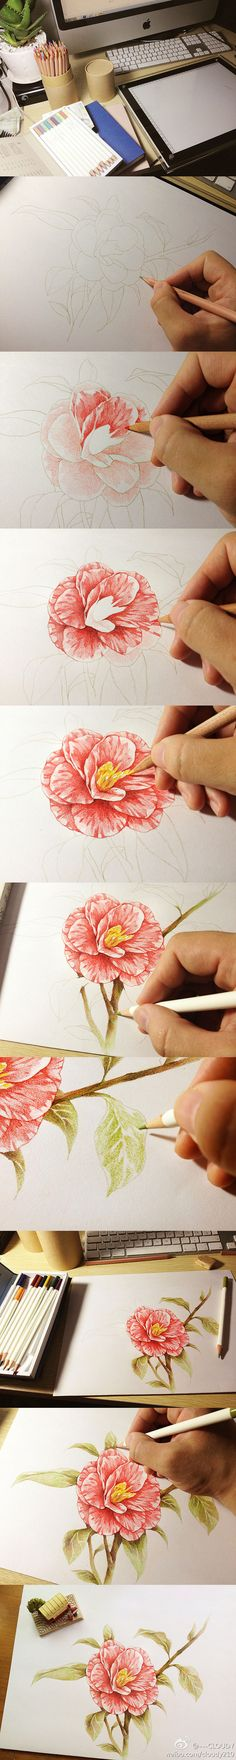 Flowers Drawing Tutorial Pencil New Ideas Pencil Drawings, Art Drawings, Realistic Drawings, Illustration, Color Pencil Art, Drawing Techniques, Art Tutorials, Drawing Tutorials, Drawing Ideas